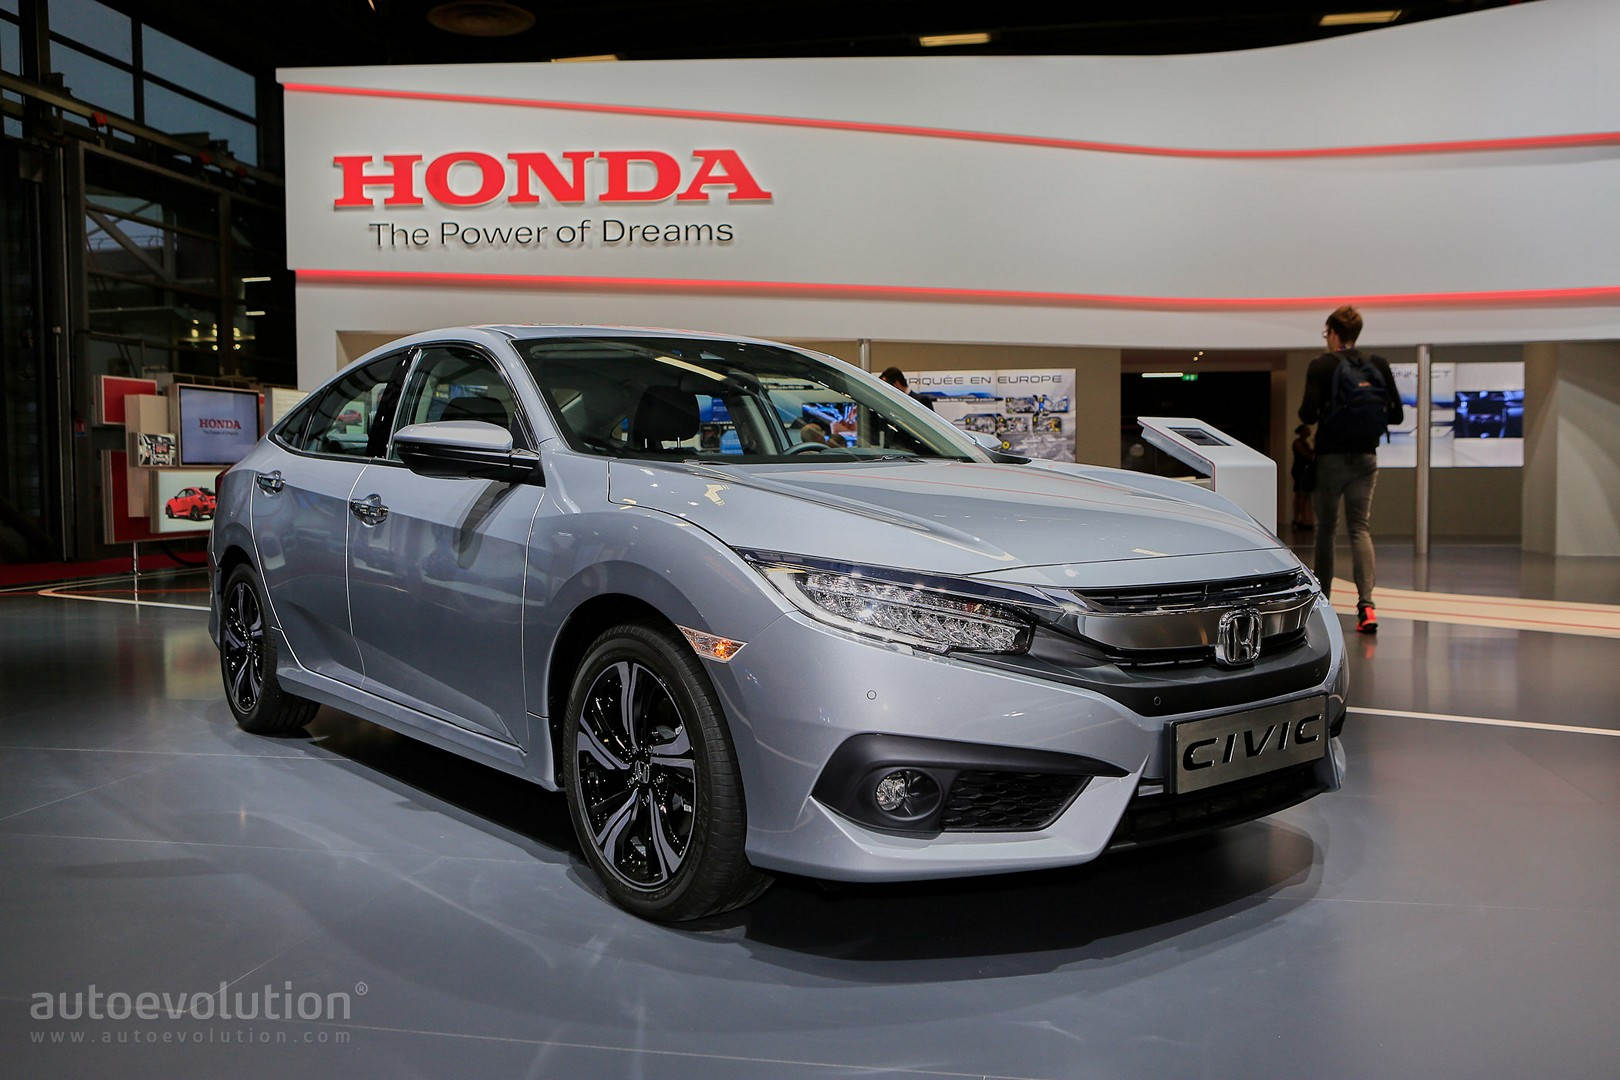 the most popular cars in Europe. However, Honda had an excellent Civic ...